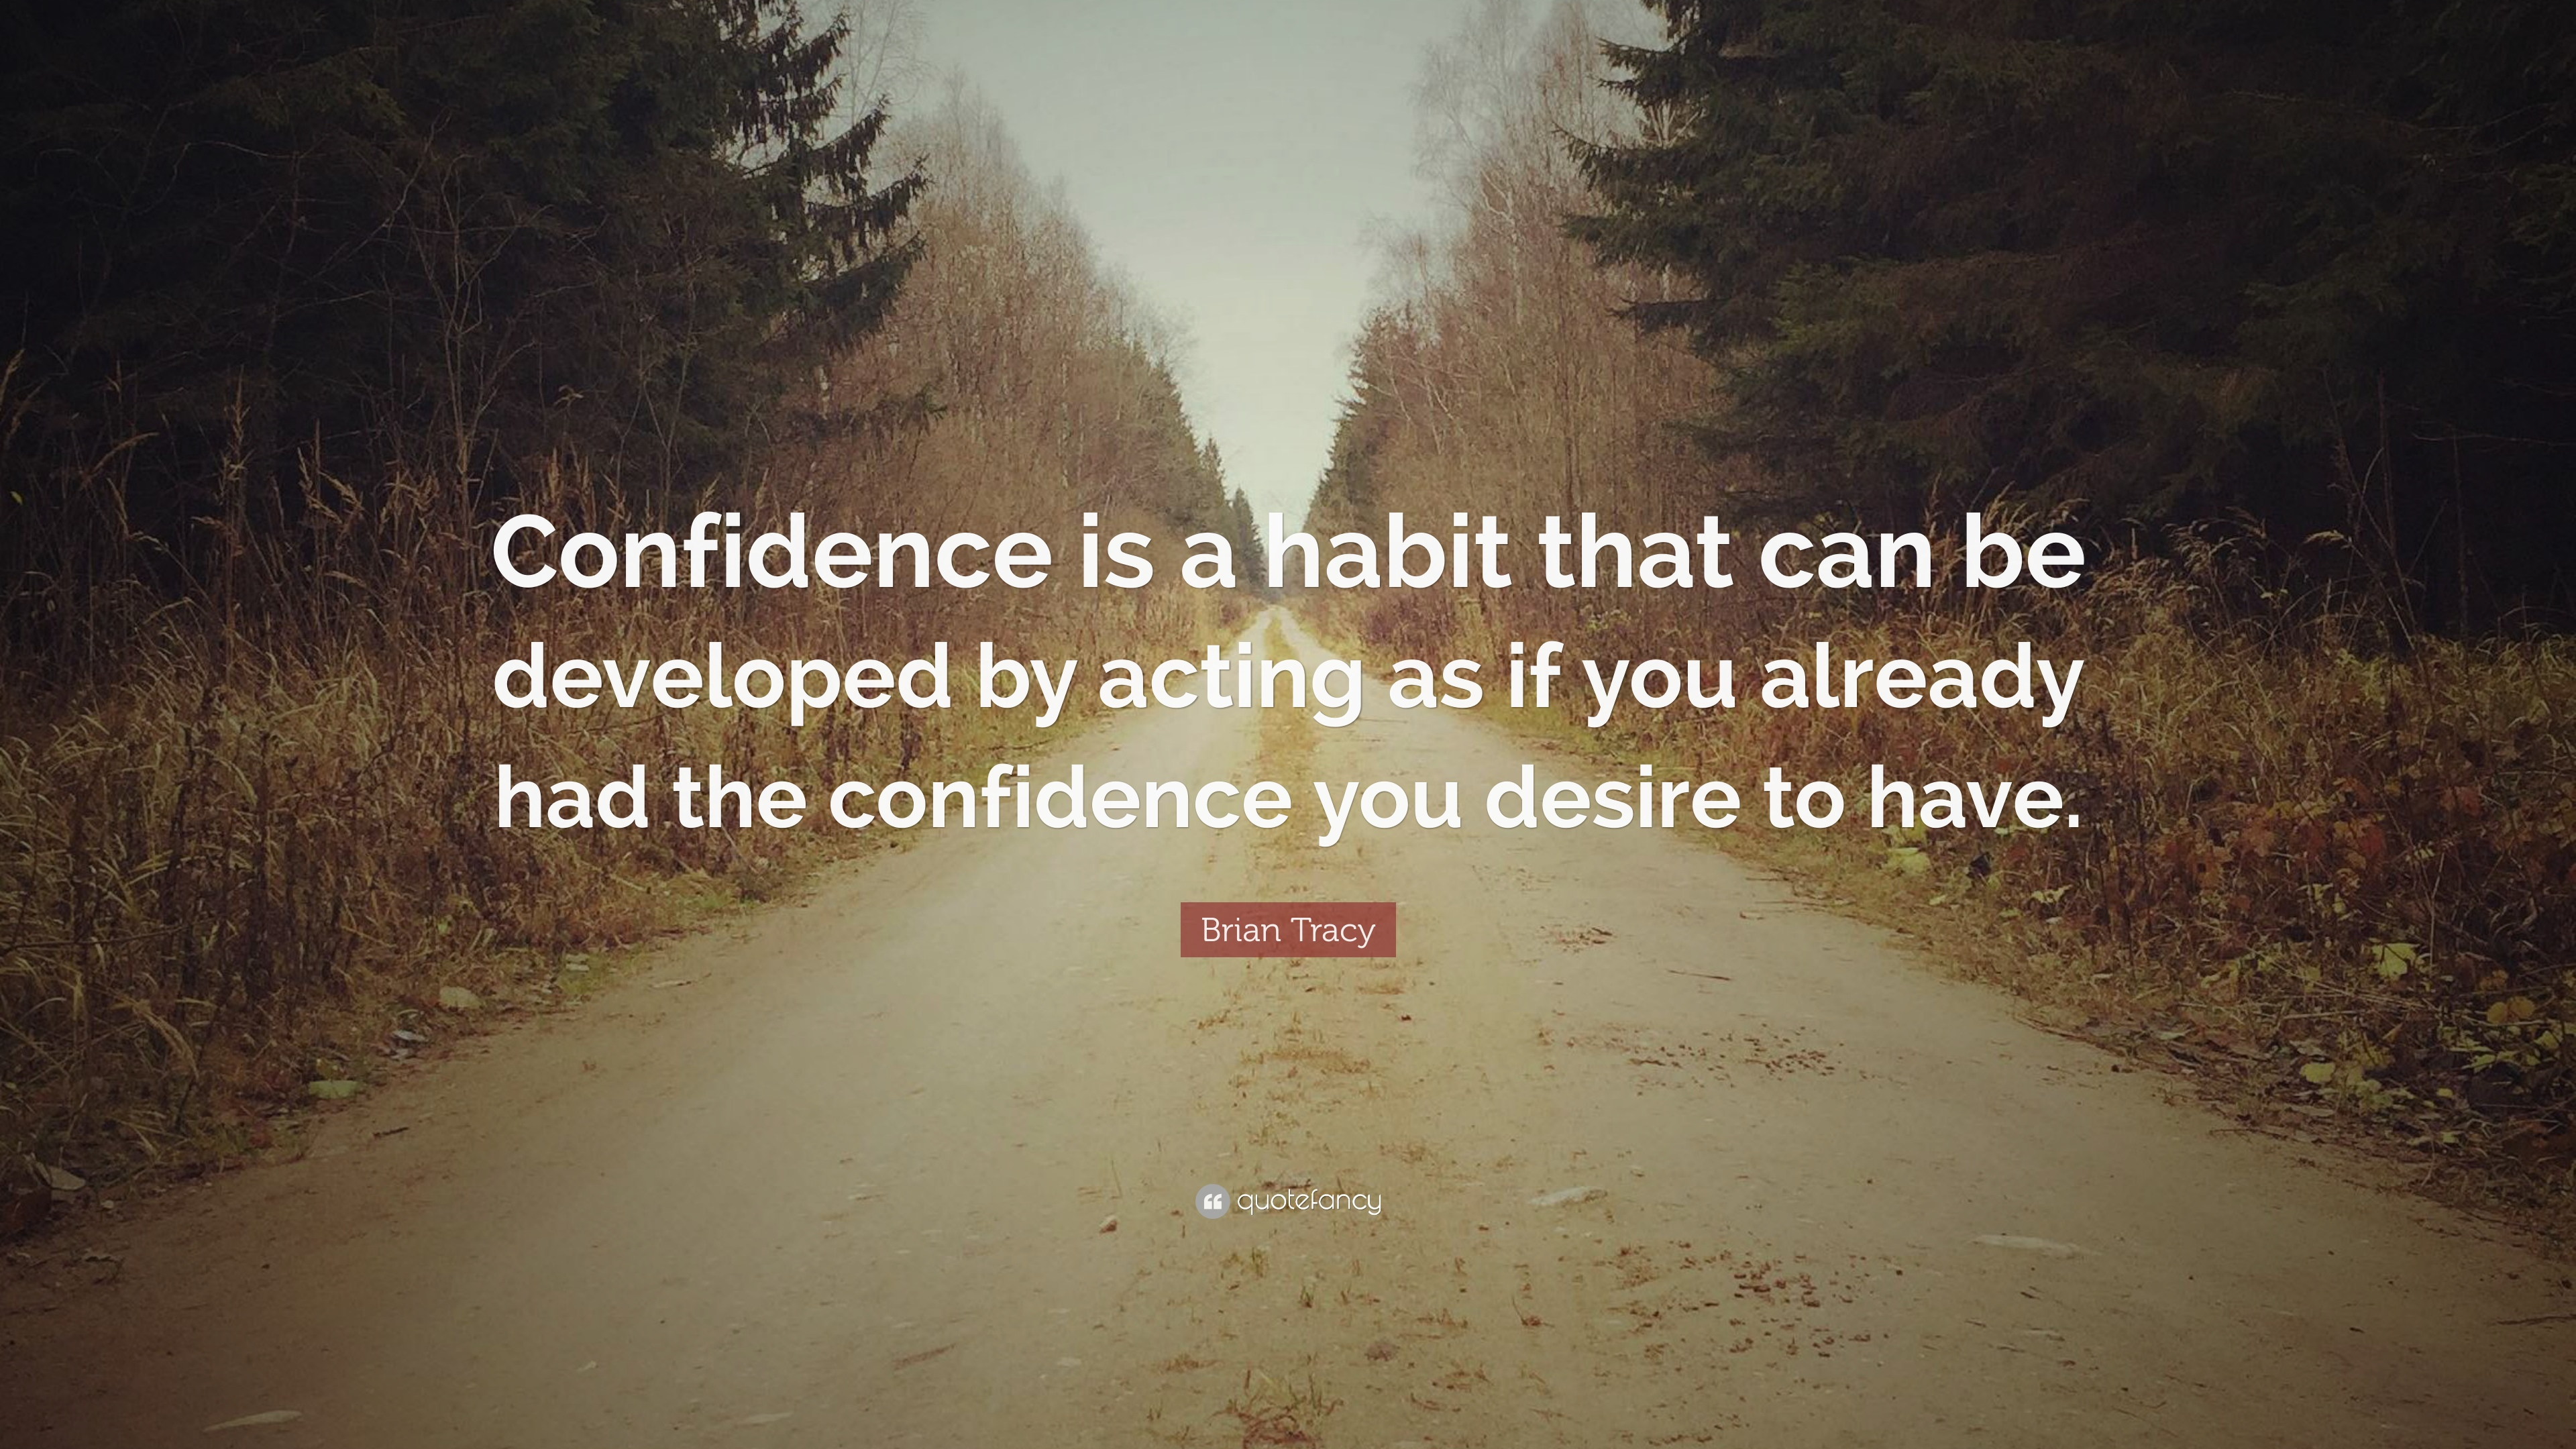 Brian Tracy Quotes | Brian Tracy Quote Confidence Is A Habit That Can Be Developed By